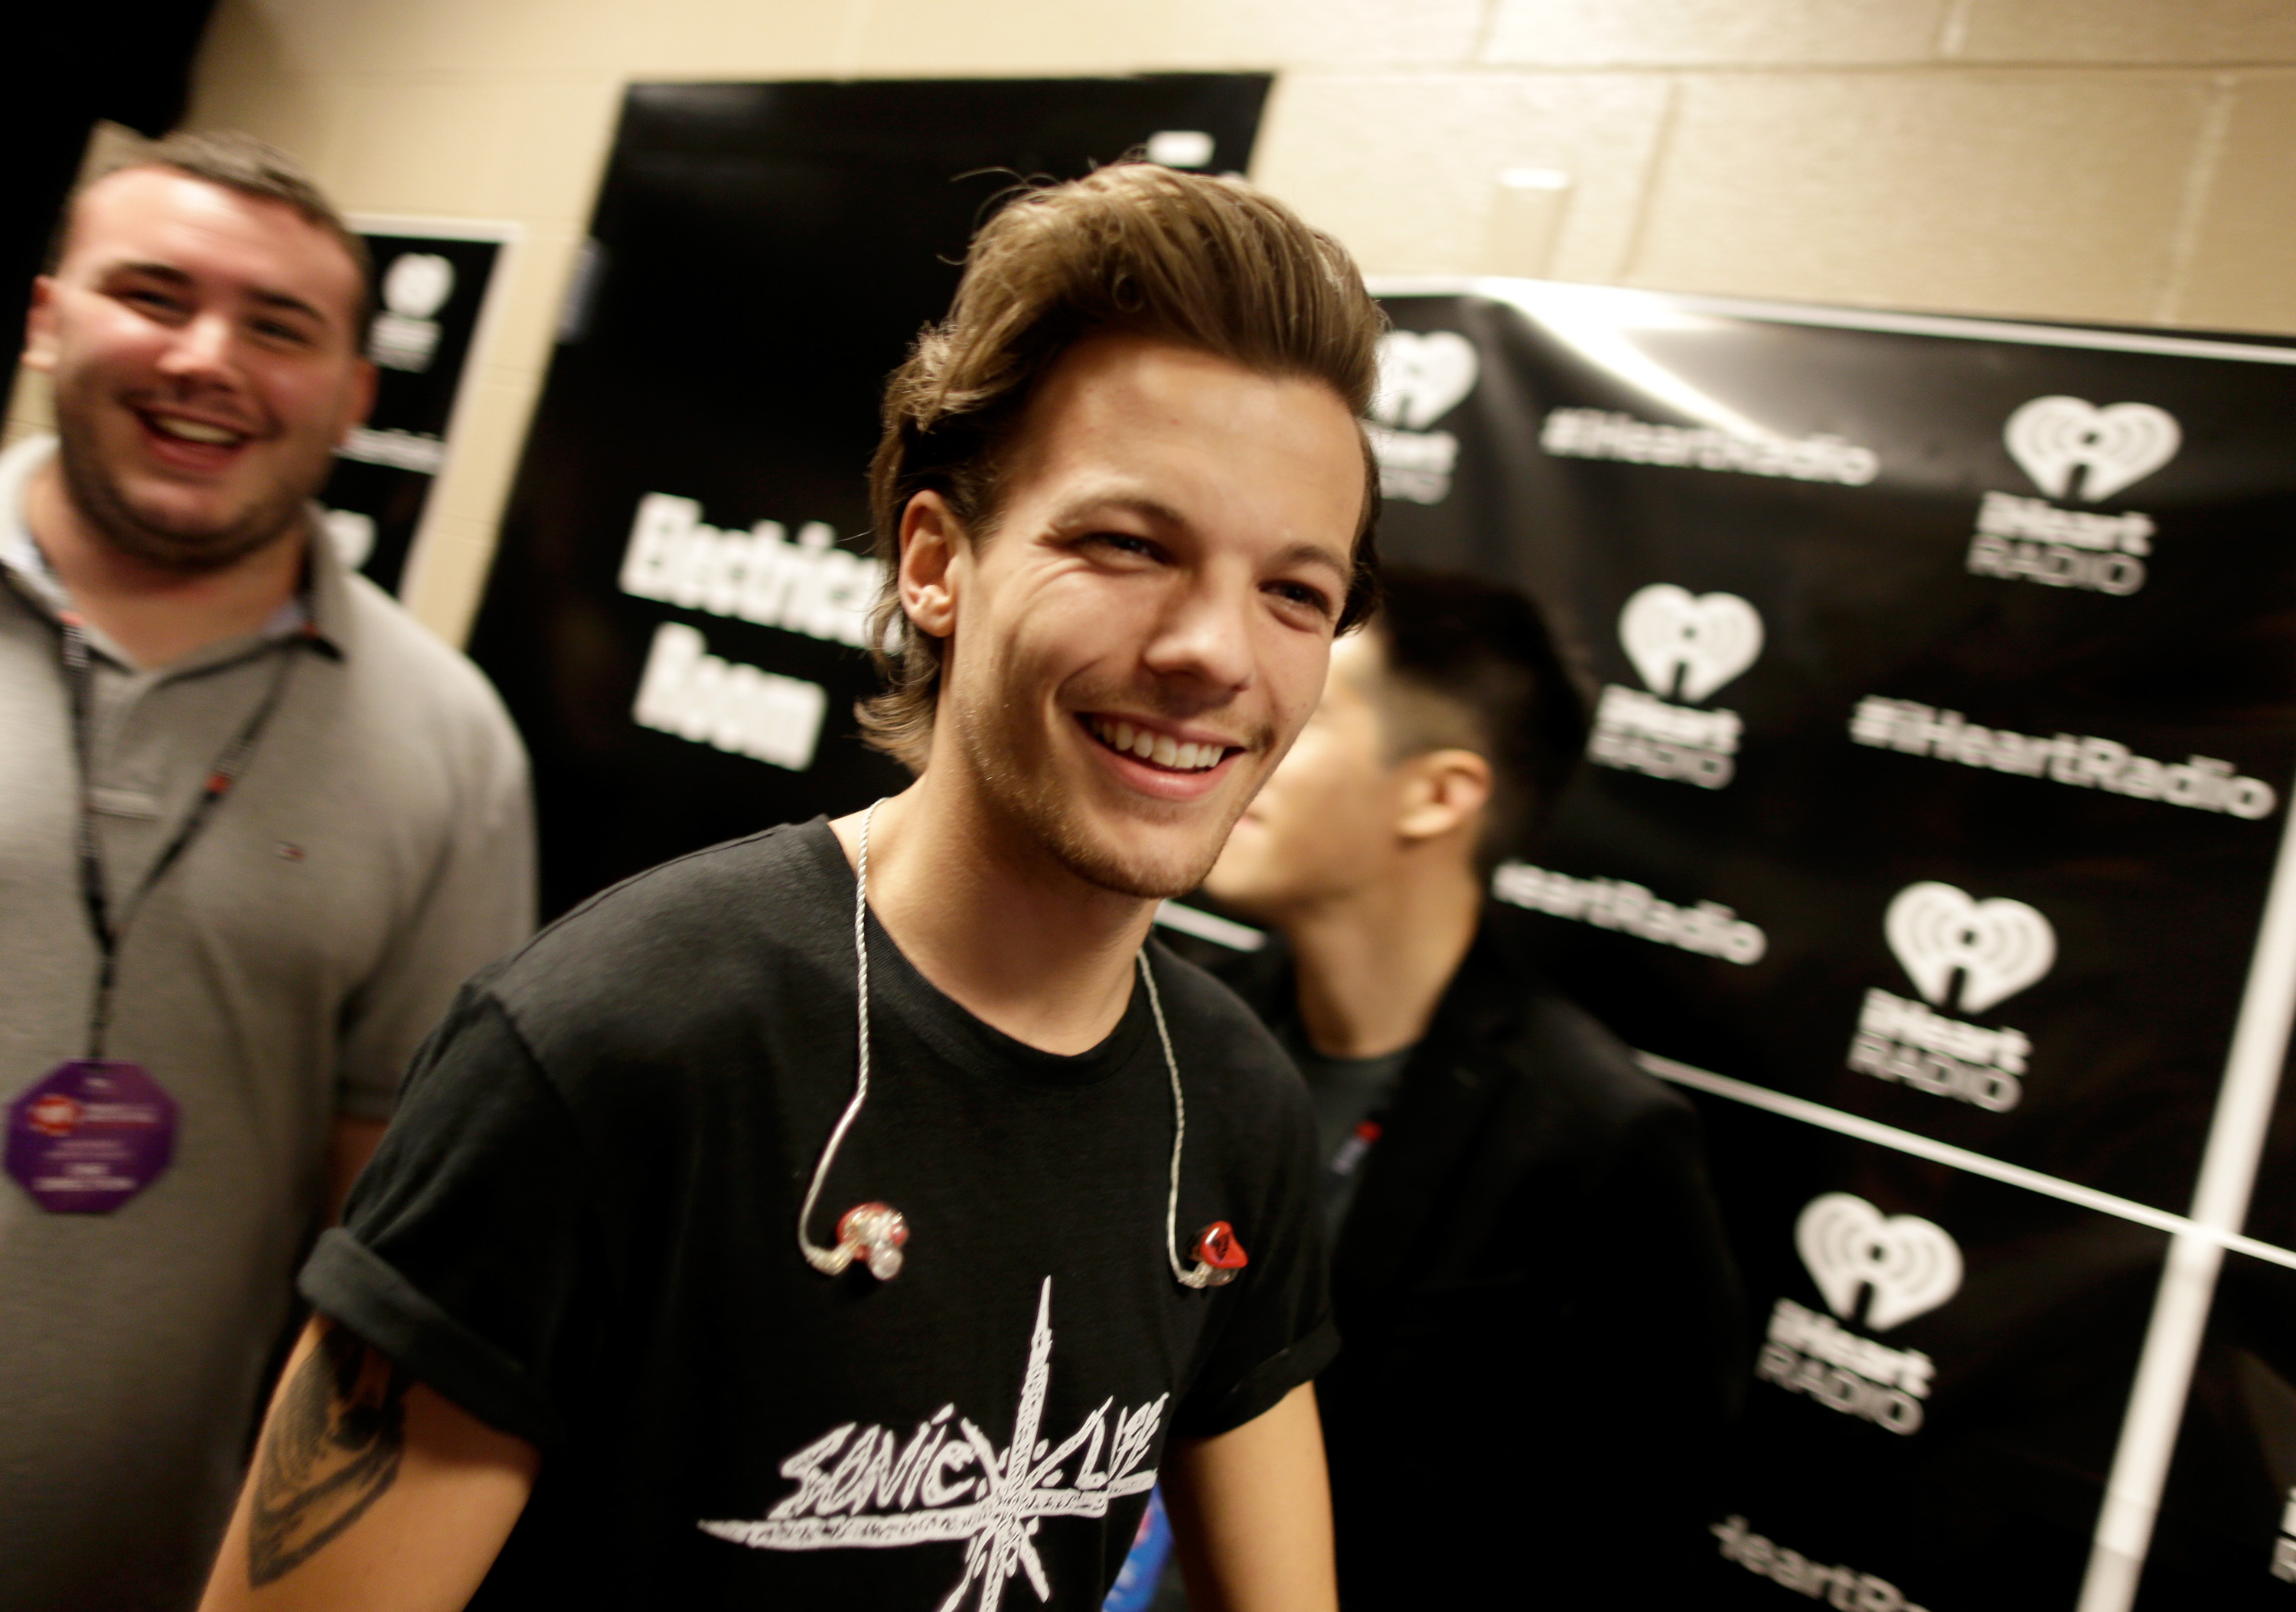 LAS VEGAS, NV - SEPTEMBER 20: Singer Louis Tomlinson of One Direction attends the 2014 iHeartRadio Music Festival at the MGM Grand Garden Arena on September 20, 2014 in Las Vegas, Nevada. (Photo by Isaac Brekken/Getty Images for iHeartMedia)